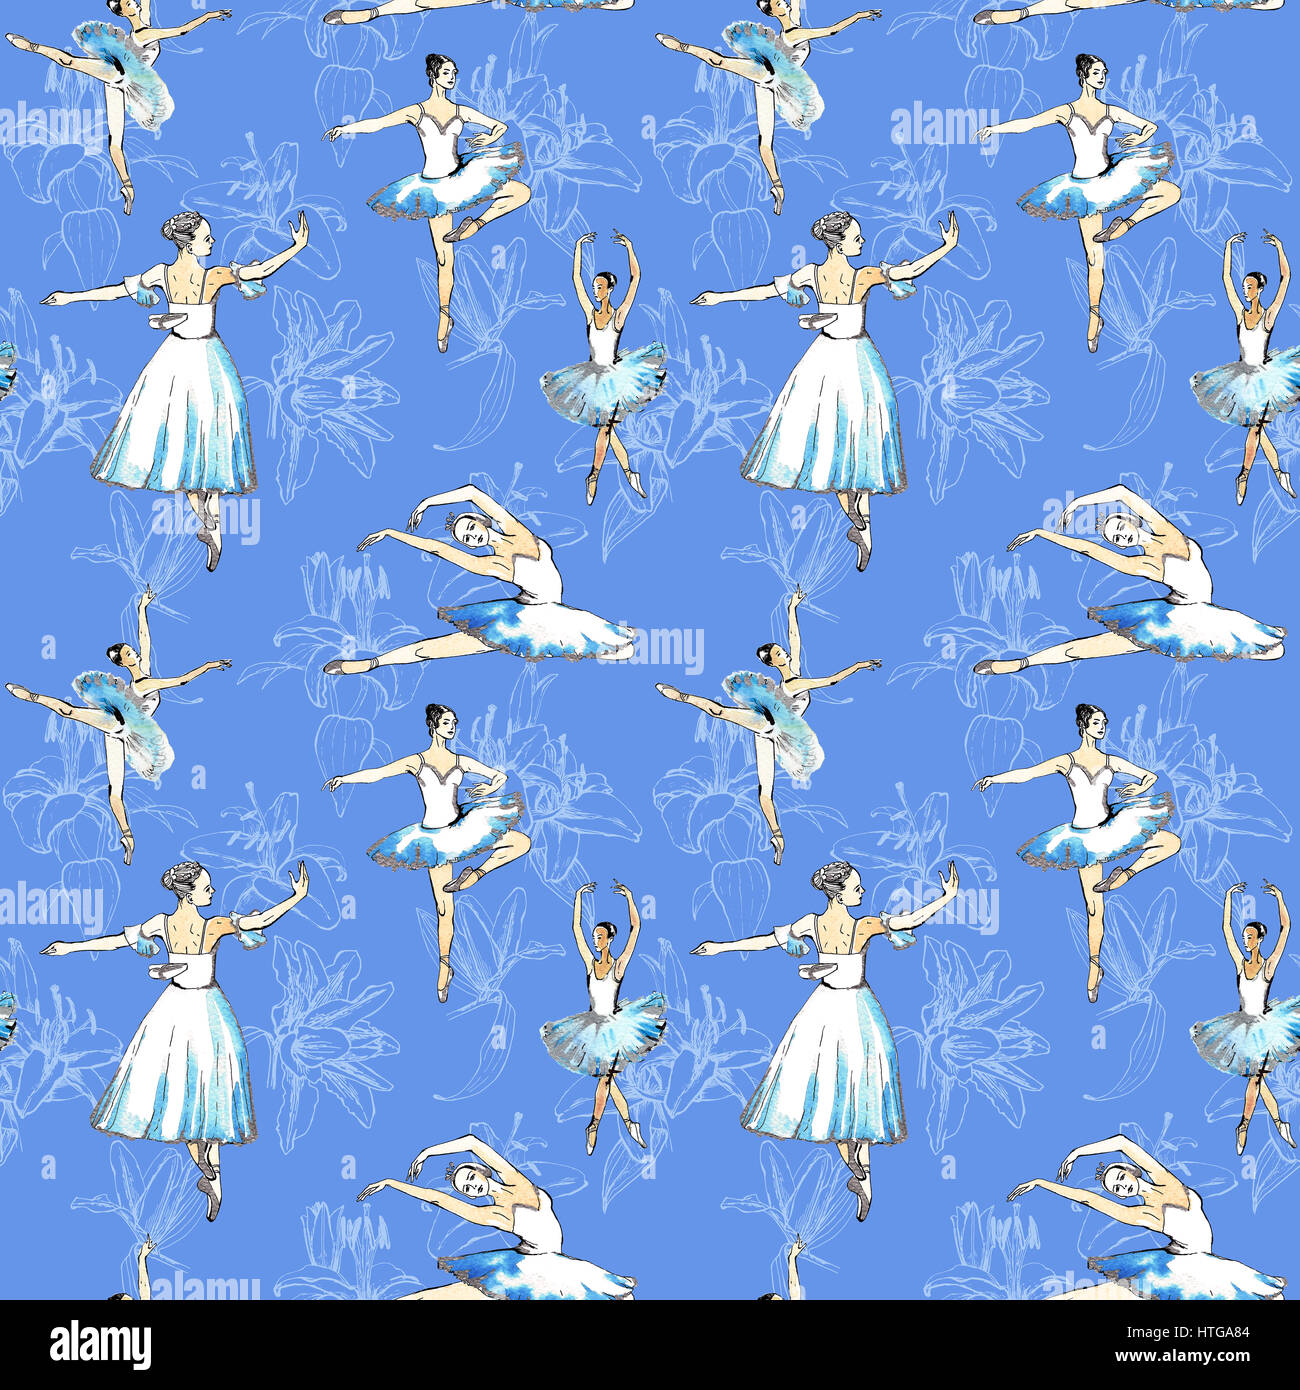 Seamless pattern of ballet dancers royalty free stock photography - Seamless Pattern Of Ballet Dancers And White Lilies Black And Silver Drawing Watercolor Painting